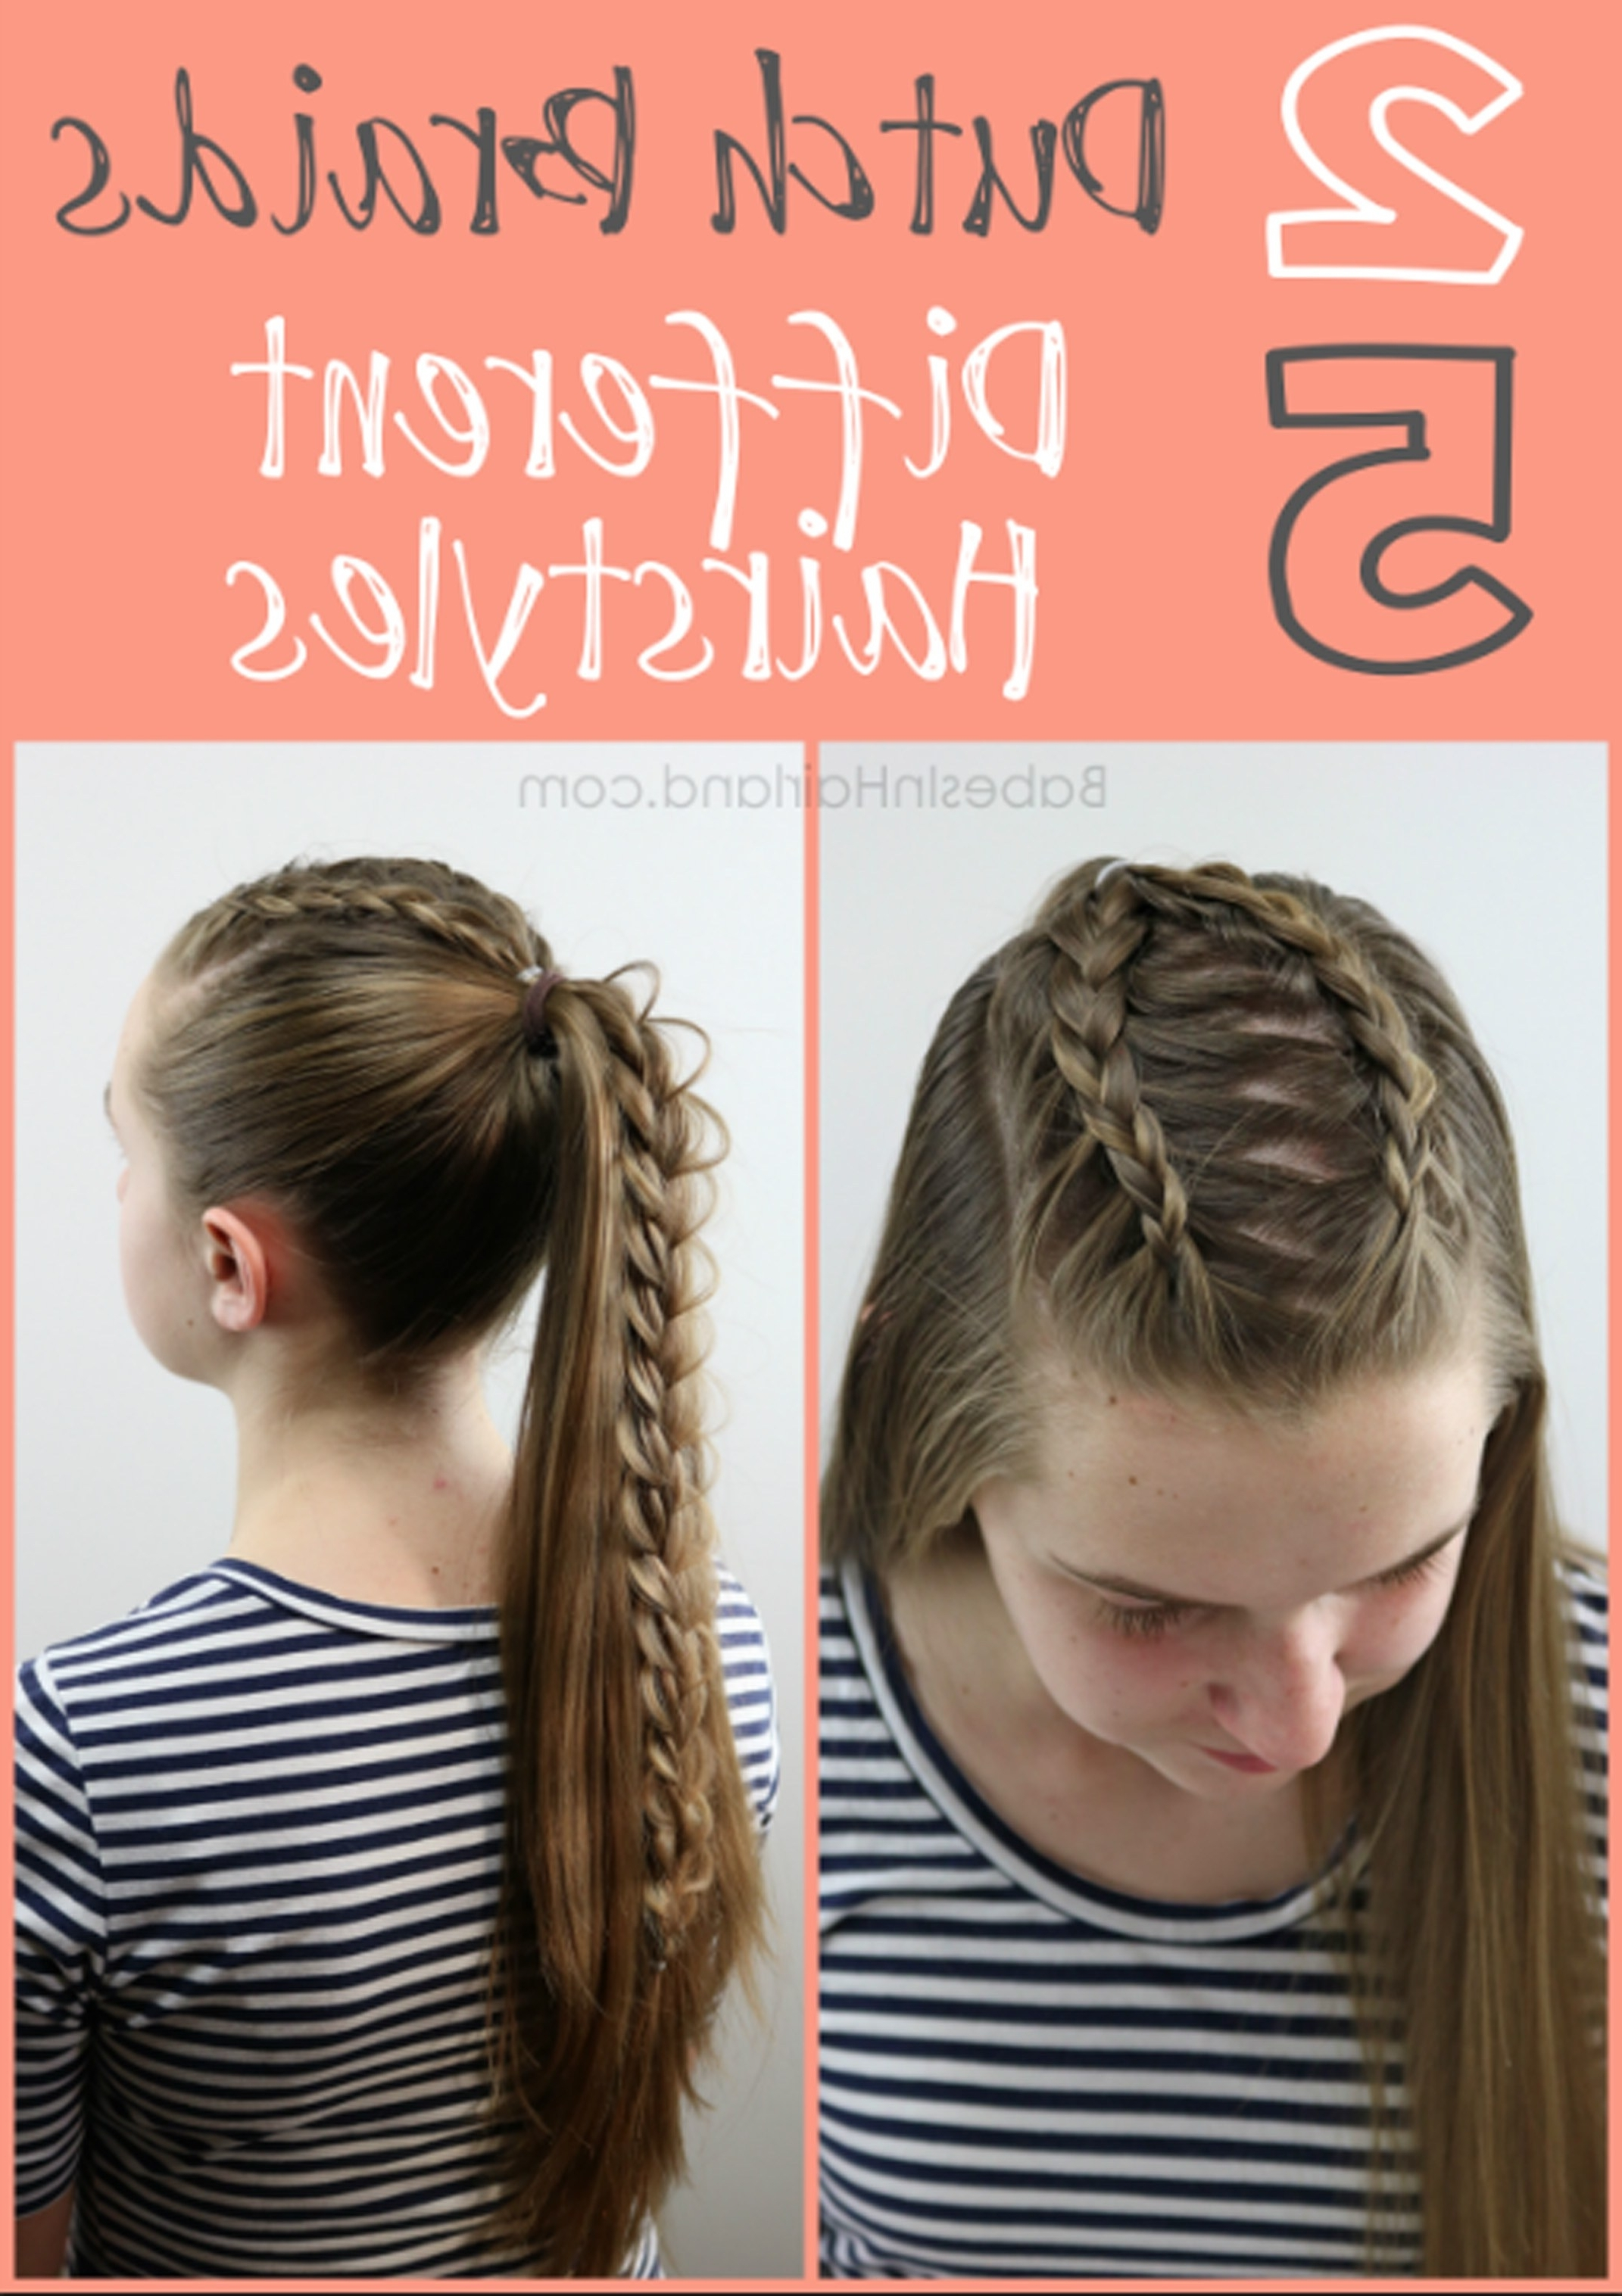 Most Recently Released High Braided Pony Hairstyles With Peek A Boo Bangs Intended For 2 Dutch Braids 5 Different Hairstyles (View 16 of 20)